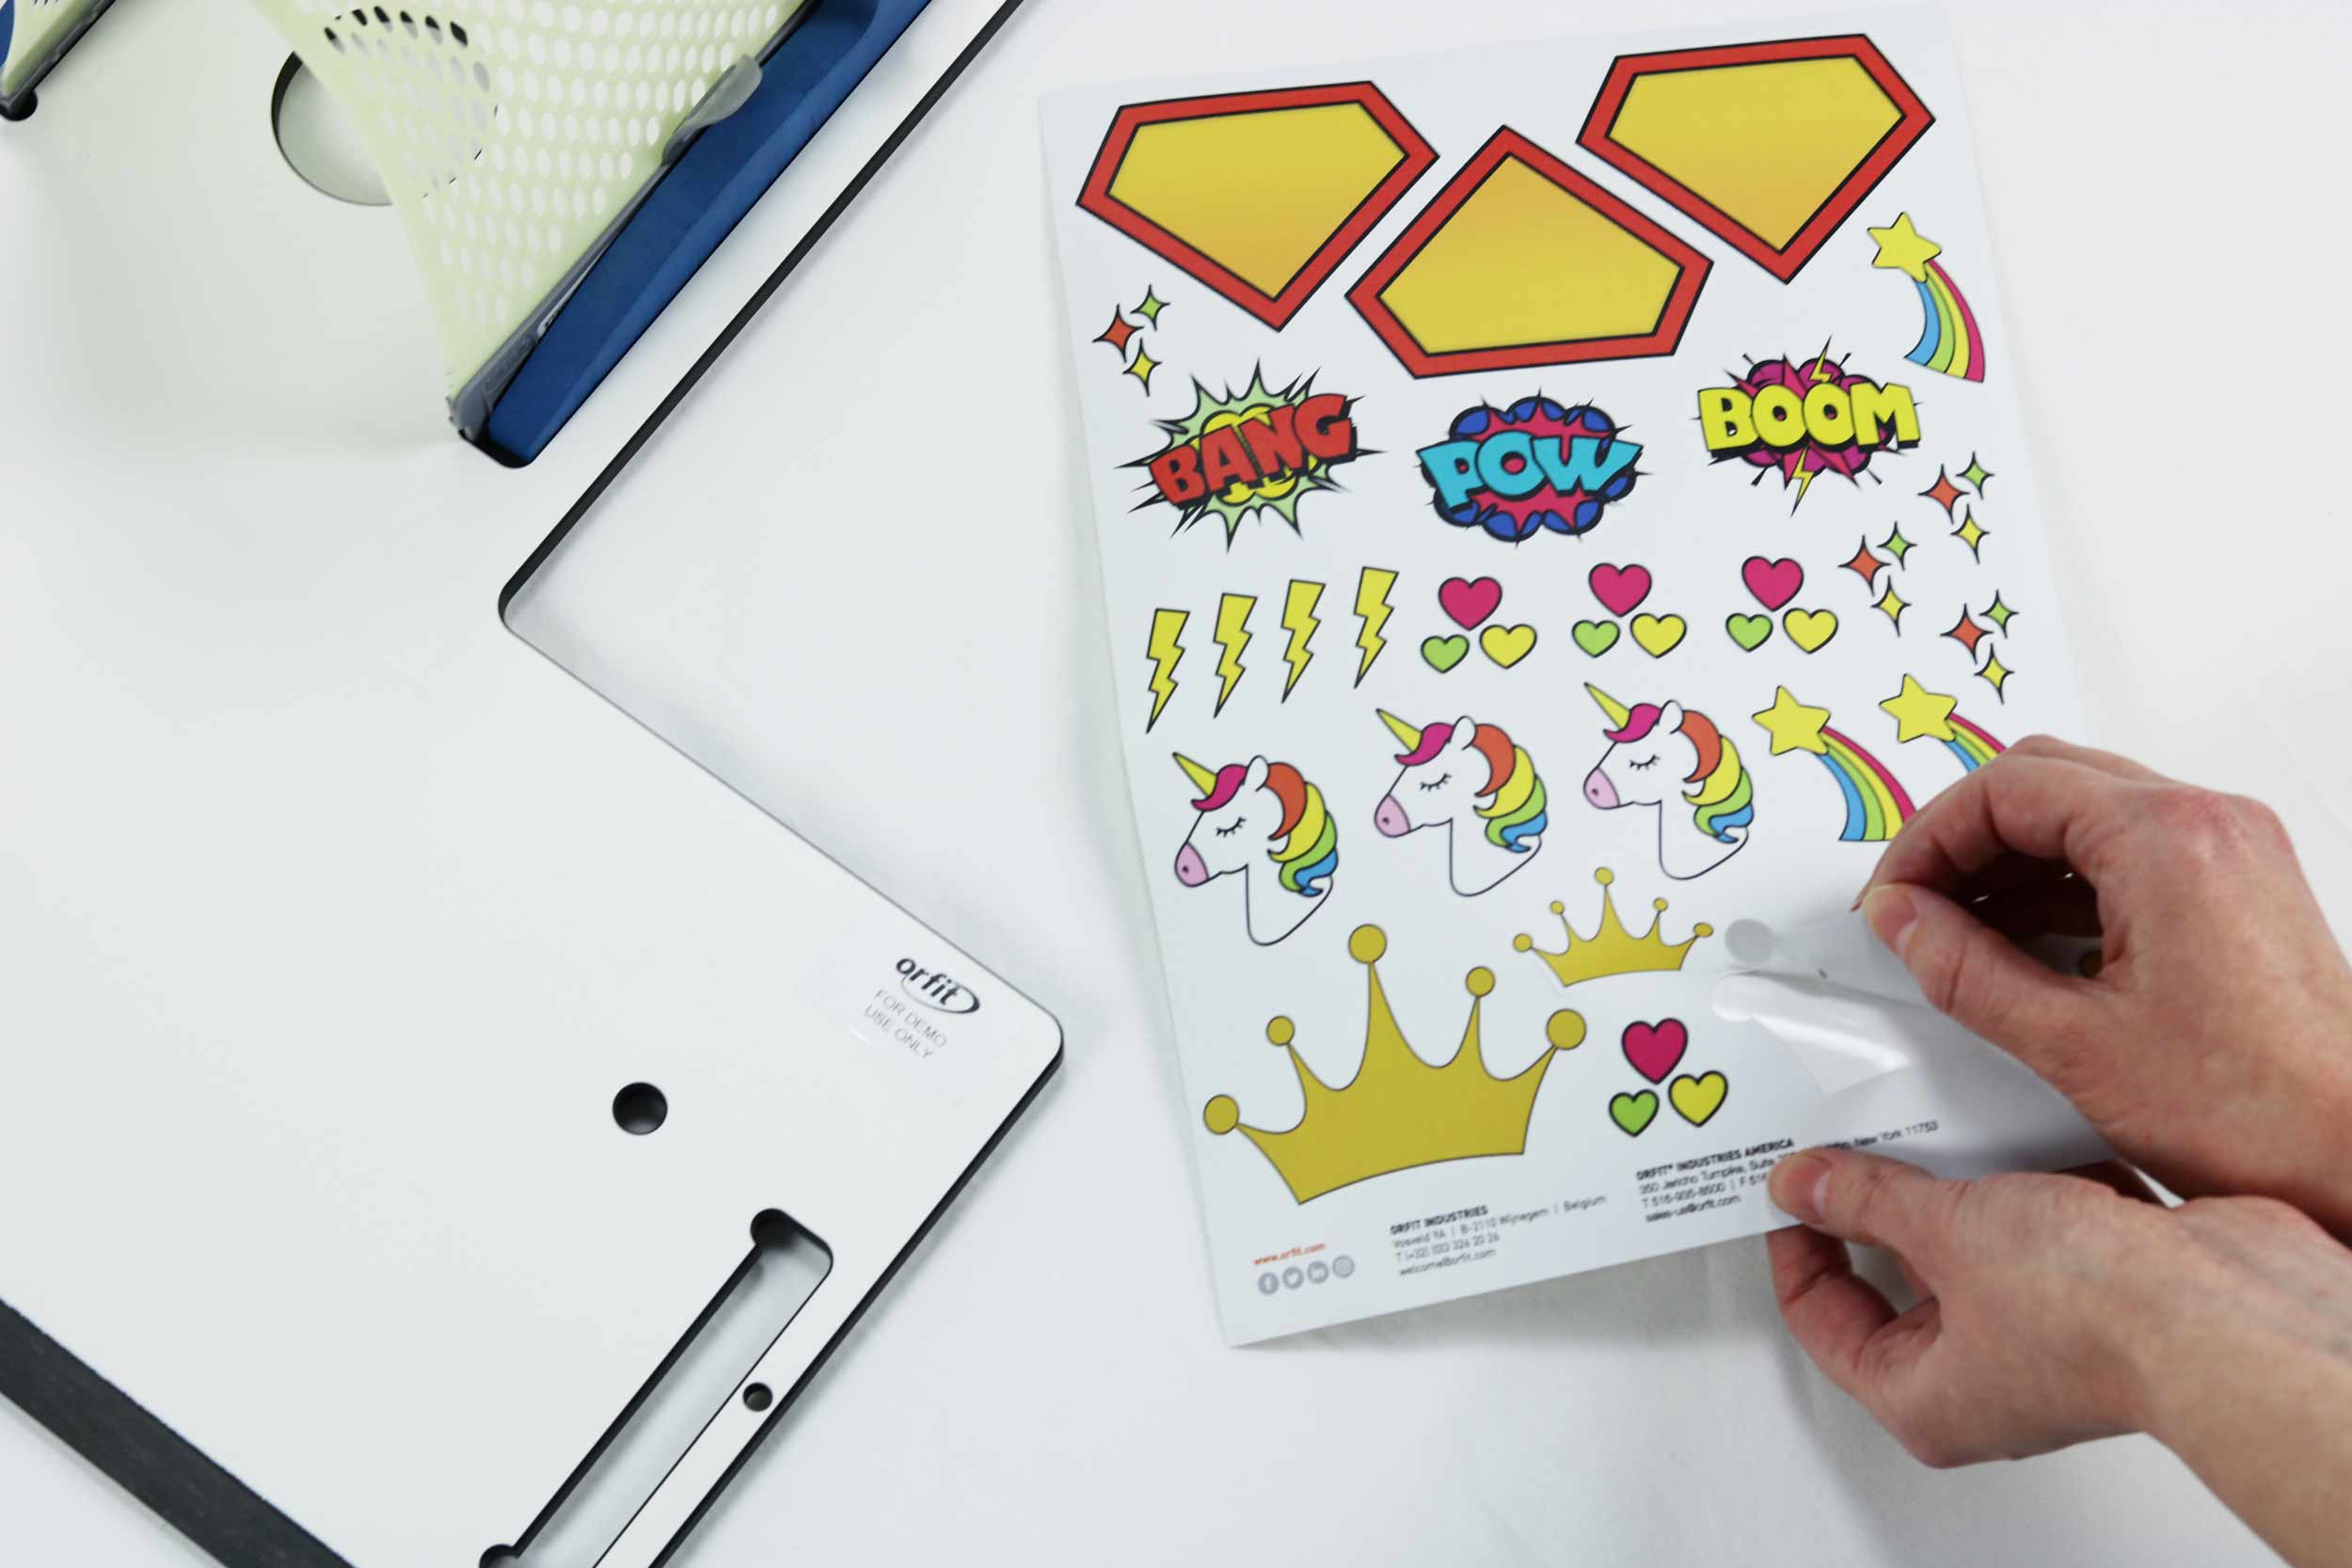 Pulling a crown sticker of a sticker sheet for the decoration of thermoplastic masks